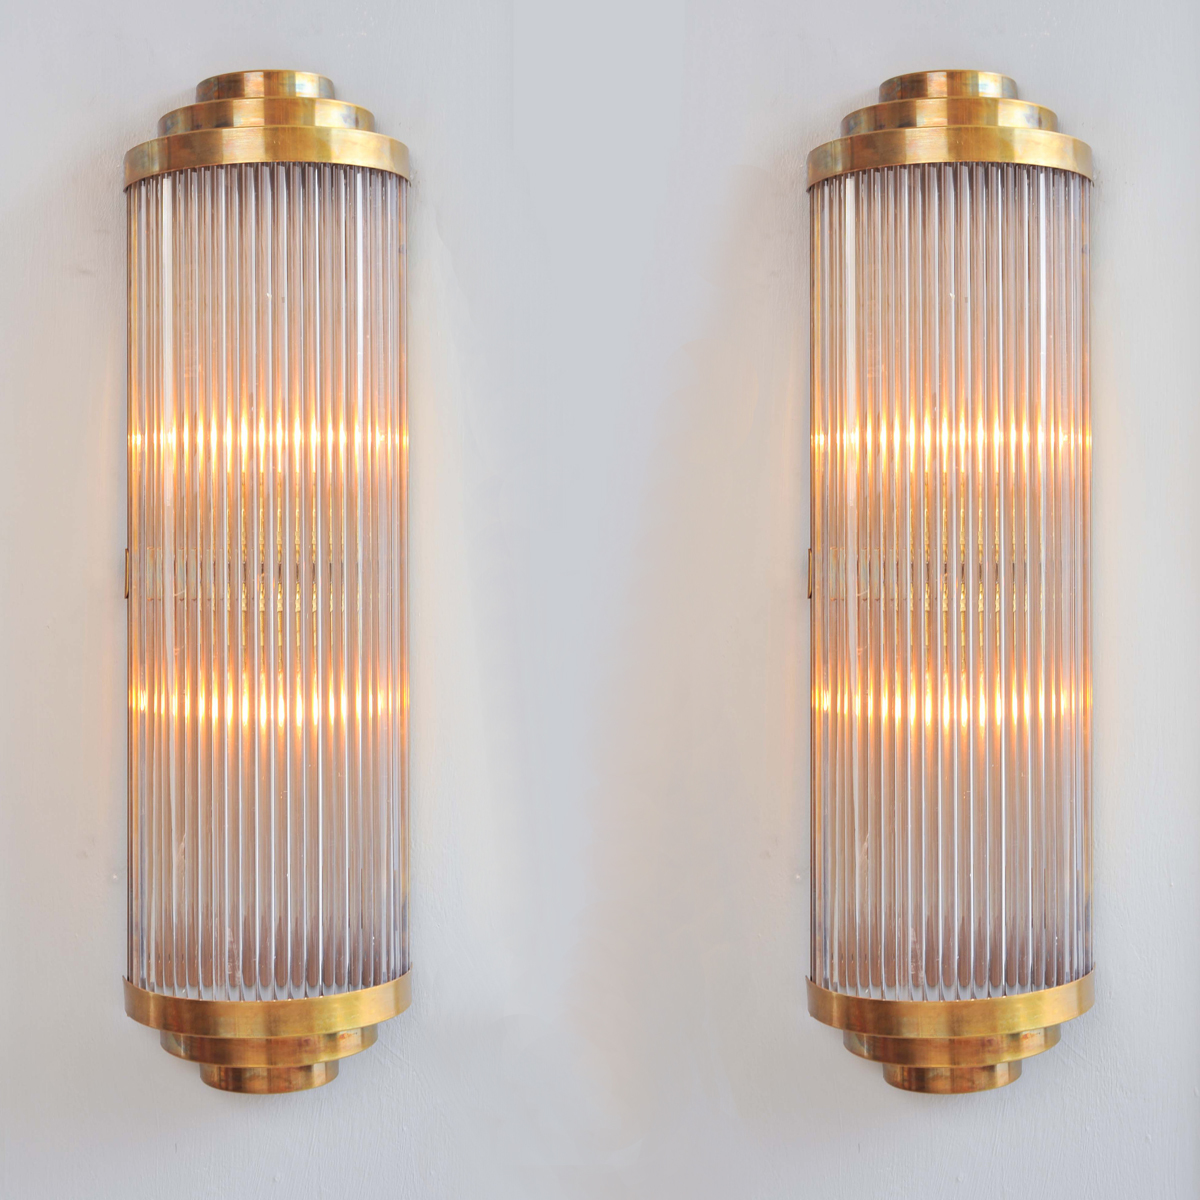 The image for Valerie Wade Lw612 Ravello Wall Lights 01